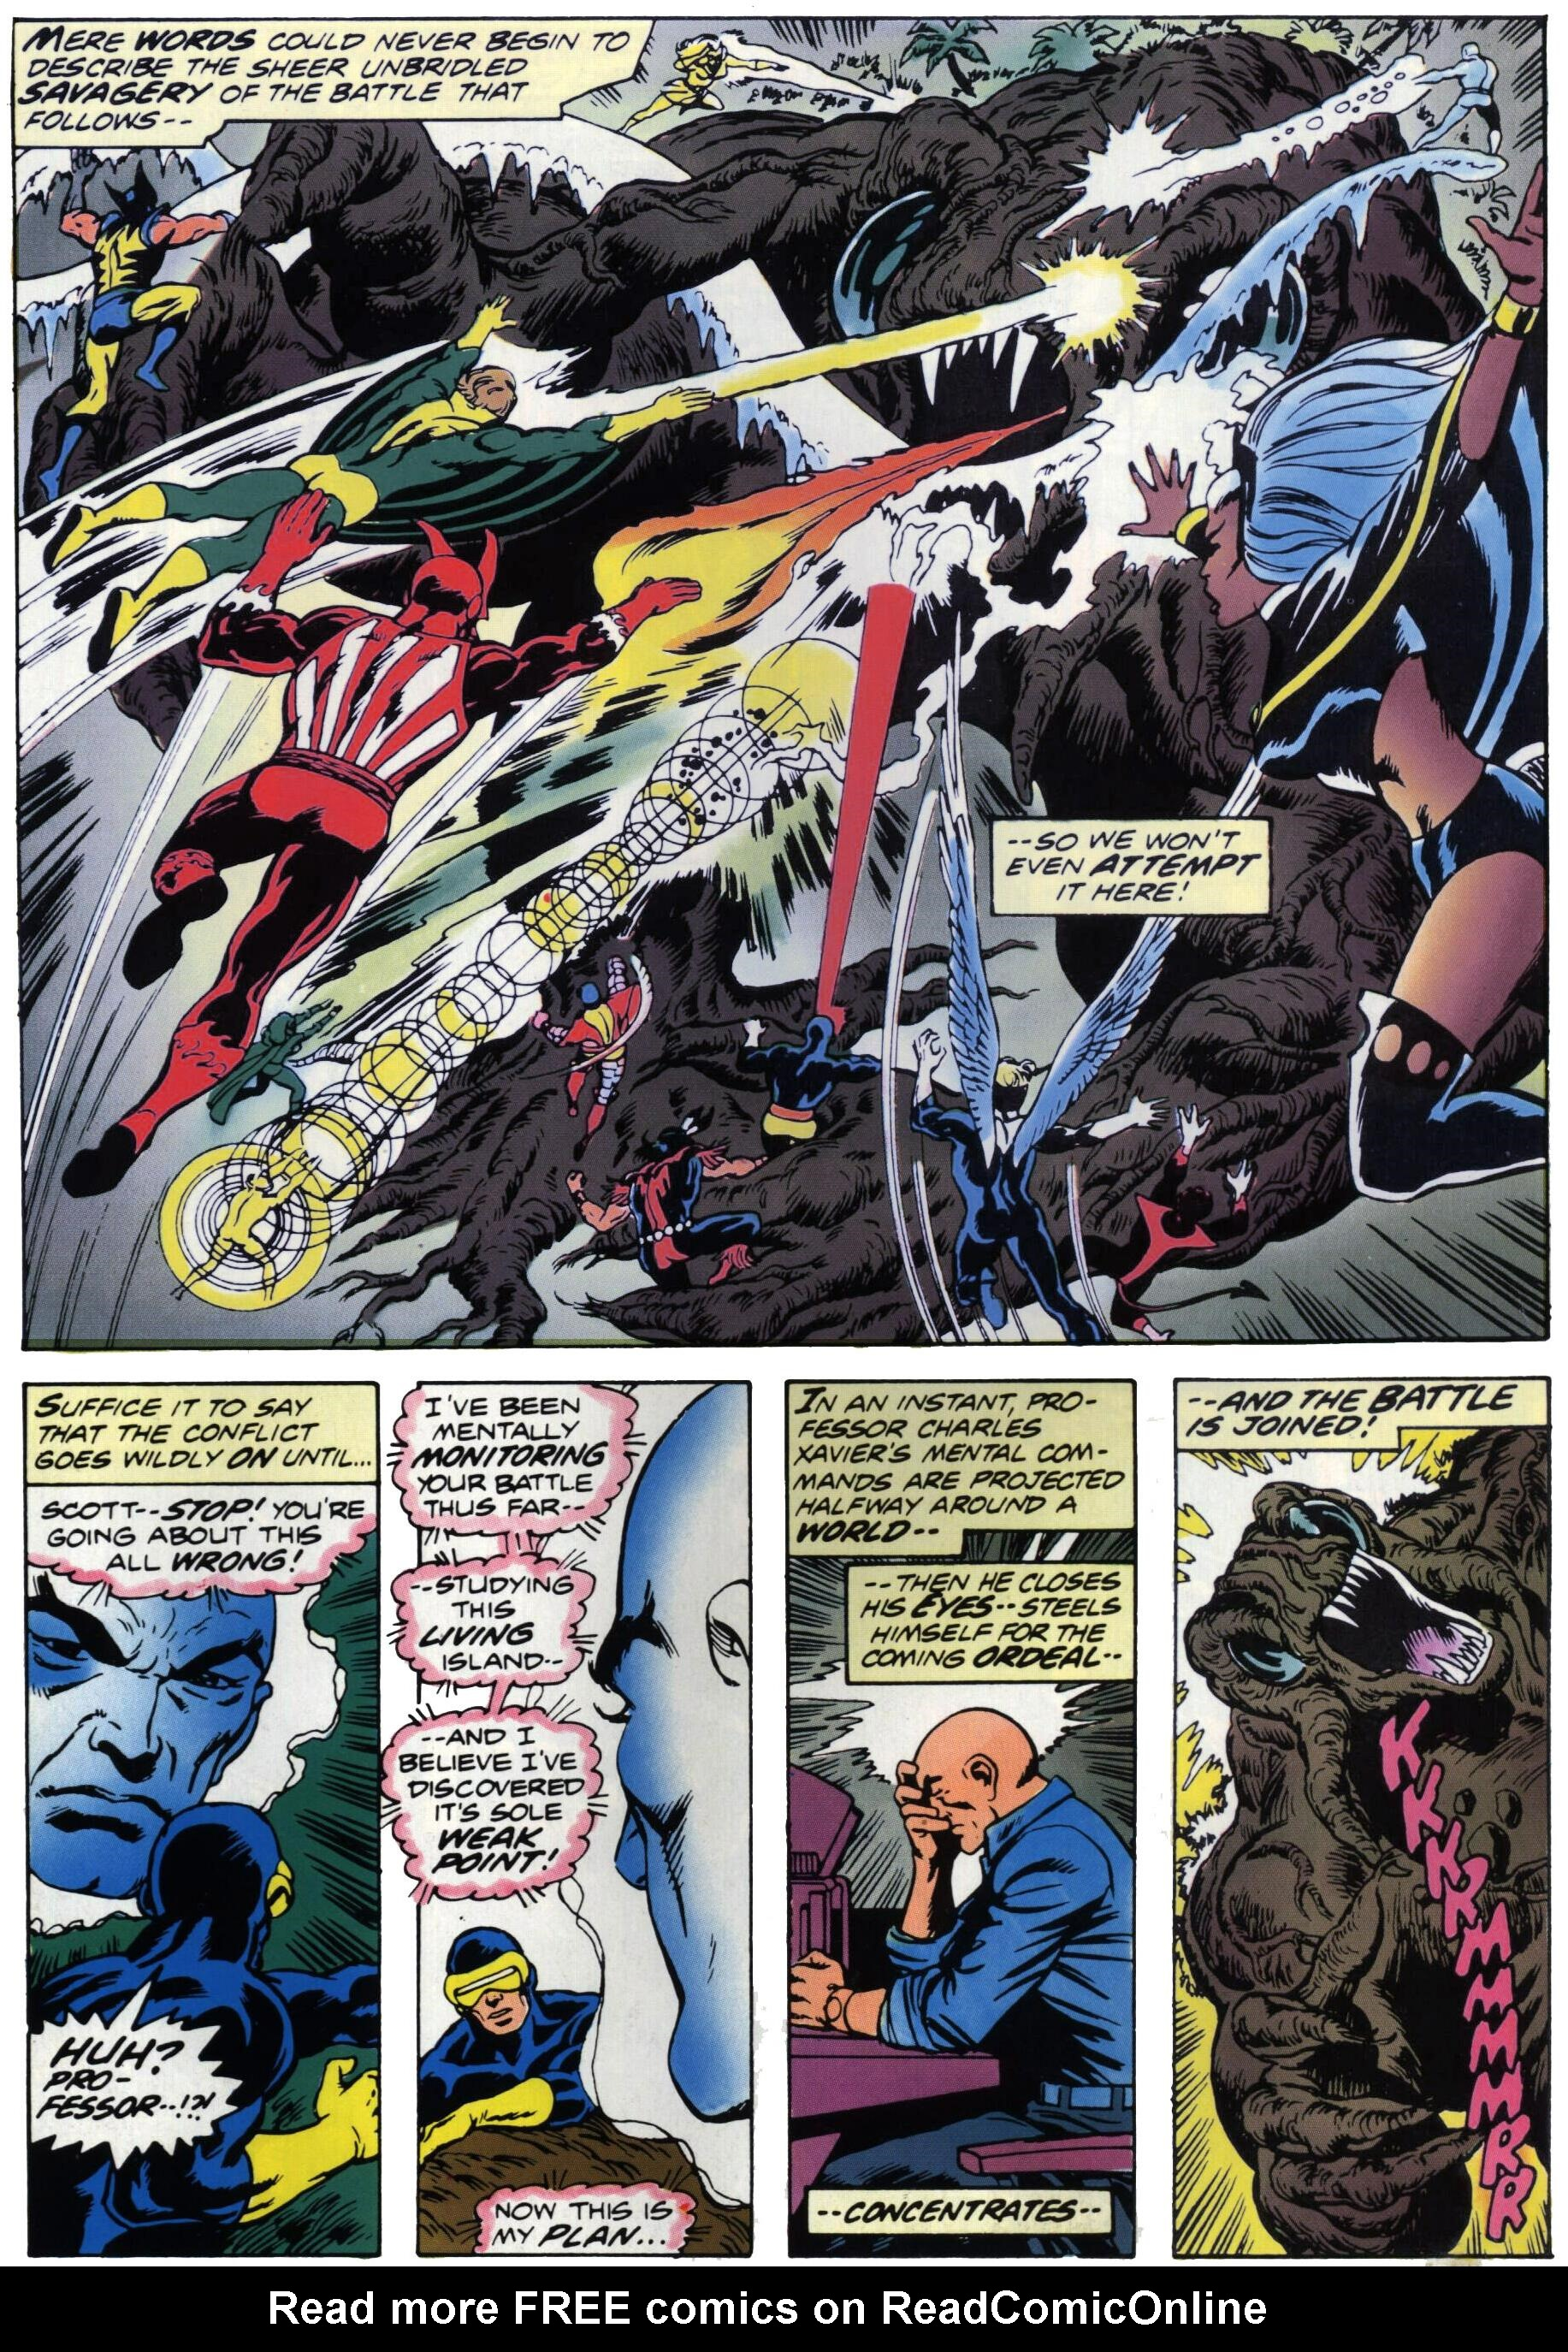 Read online Giant-Size X-Men comic -  Issue #1 - 32